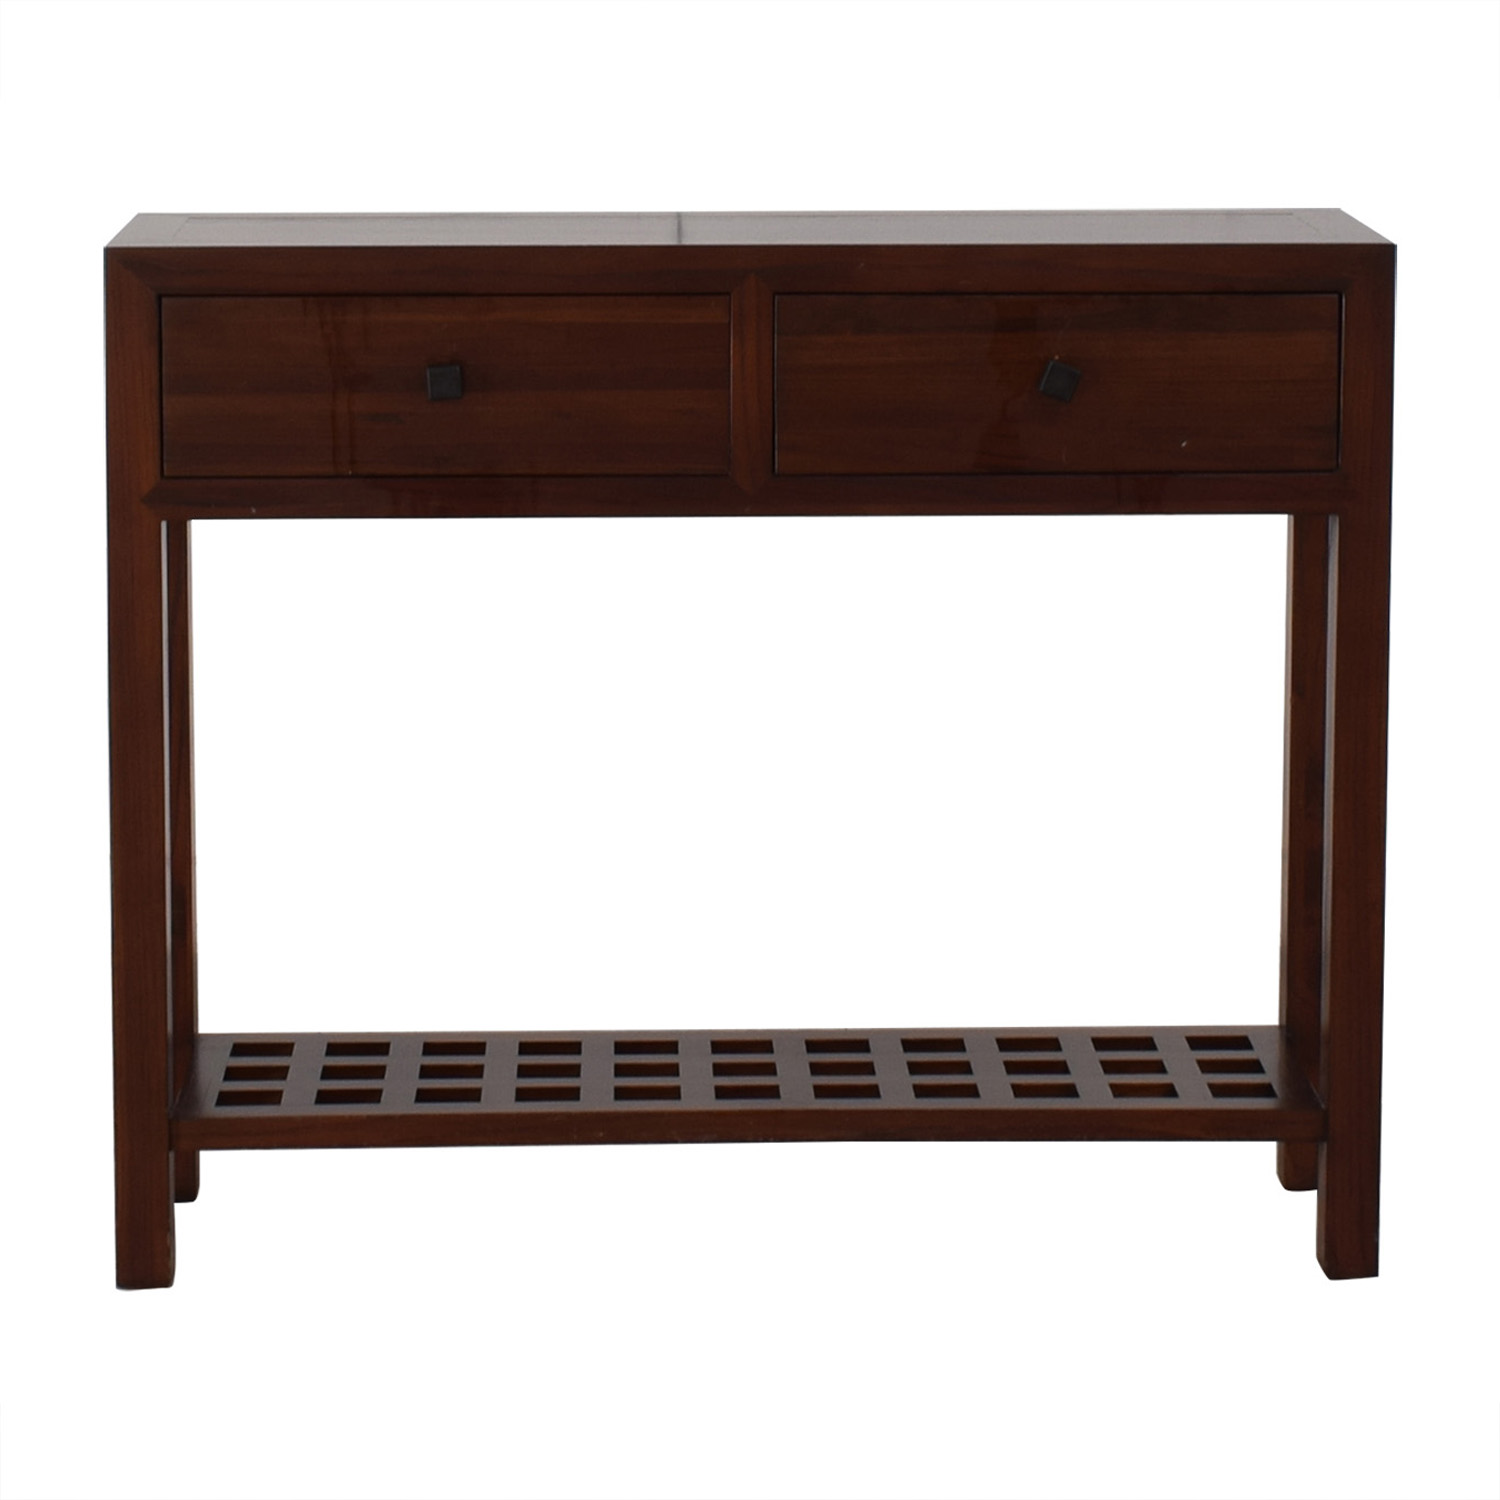 Room & Board Room & Board by Maria Yee Console Table coupon